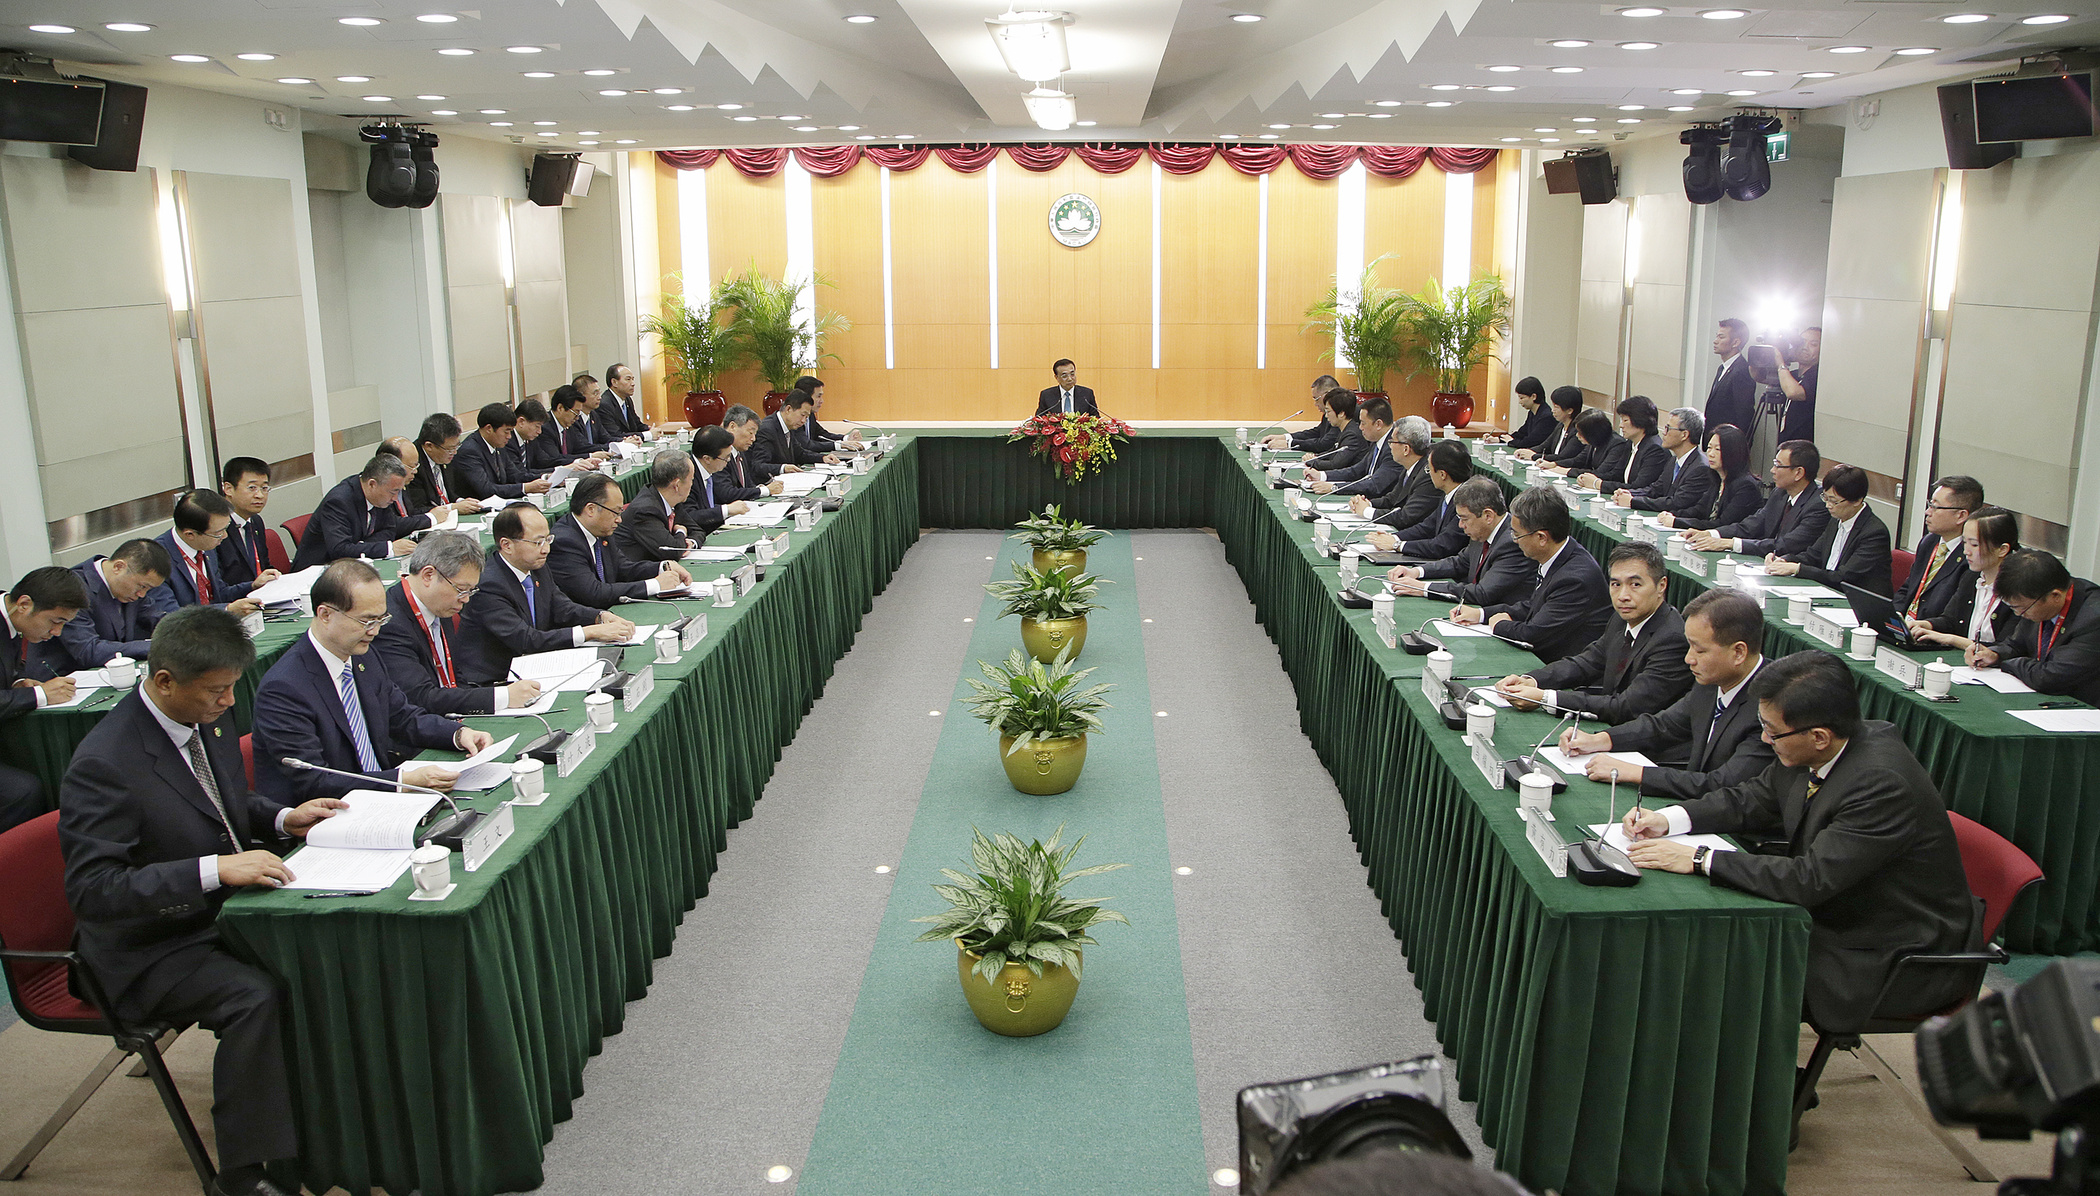 Central government launches 19 measures to support Macau